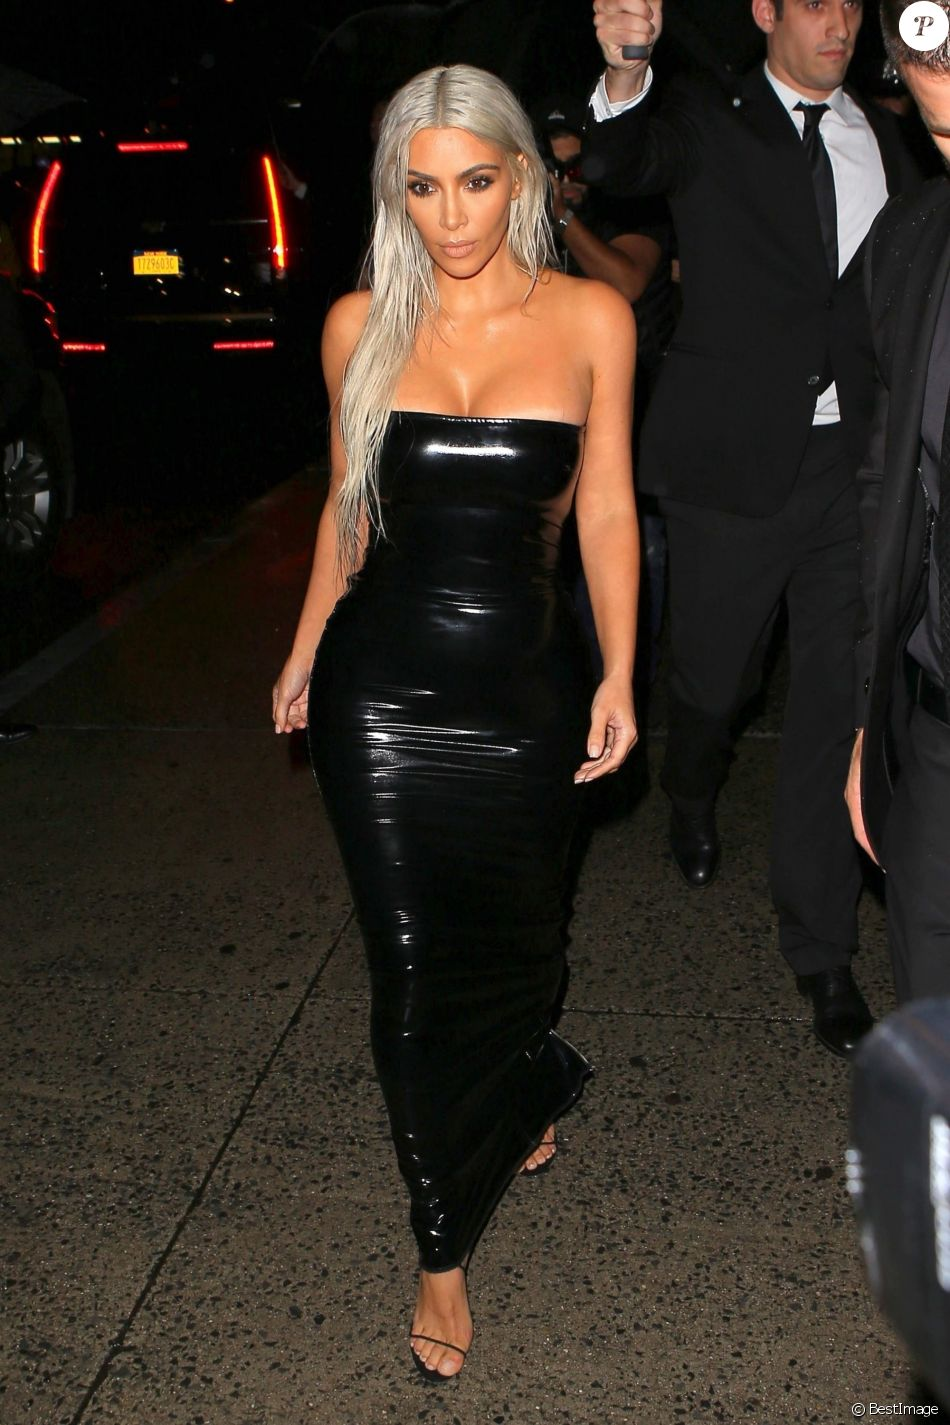 Kim Kardashian arrivant au défilé de mode Tom Ford lors de la Fashion week à New York, le 6 septembre 2017